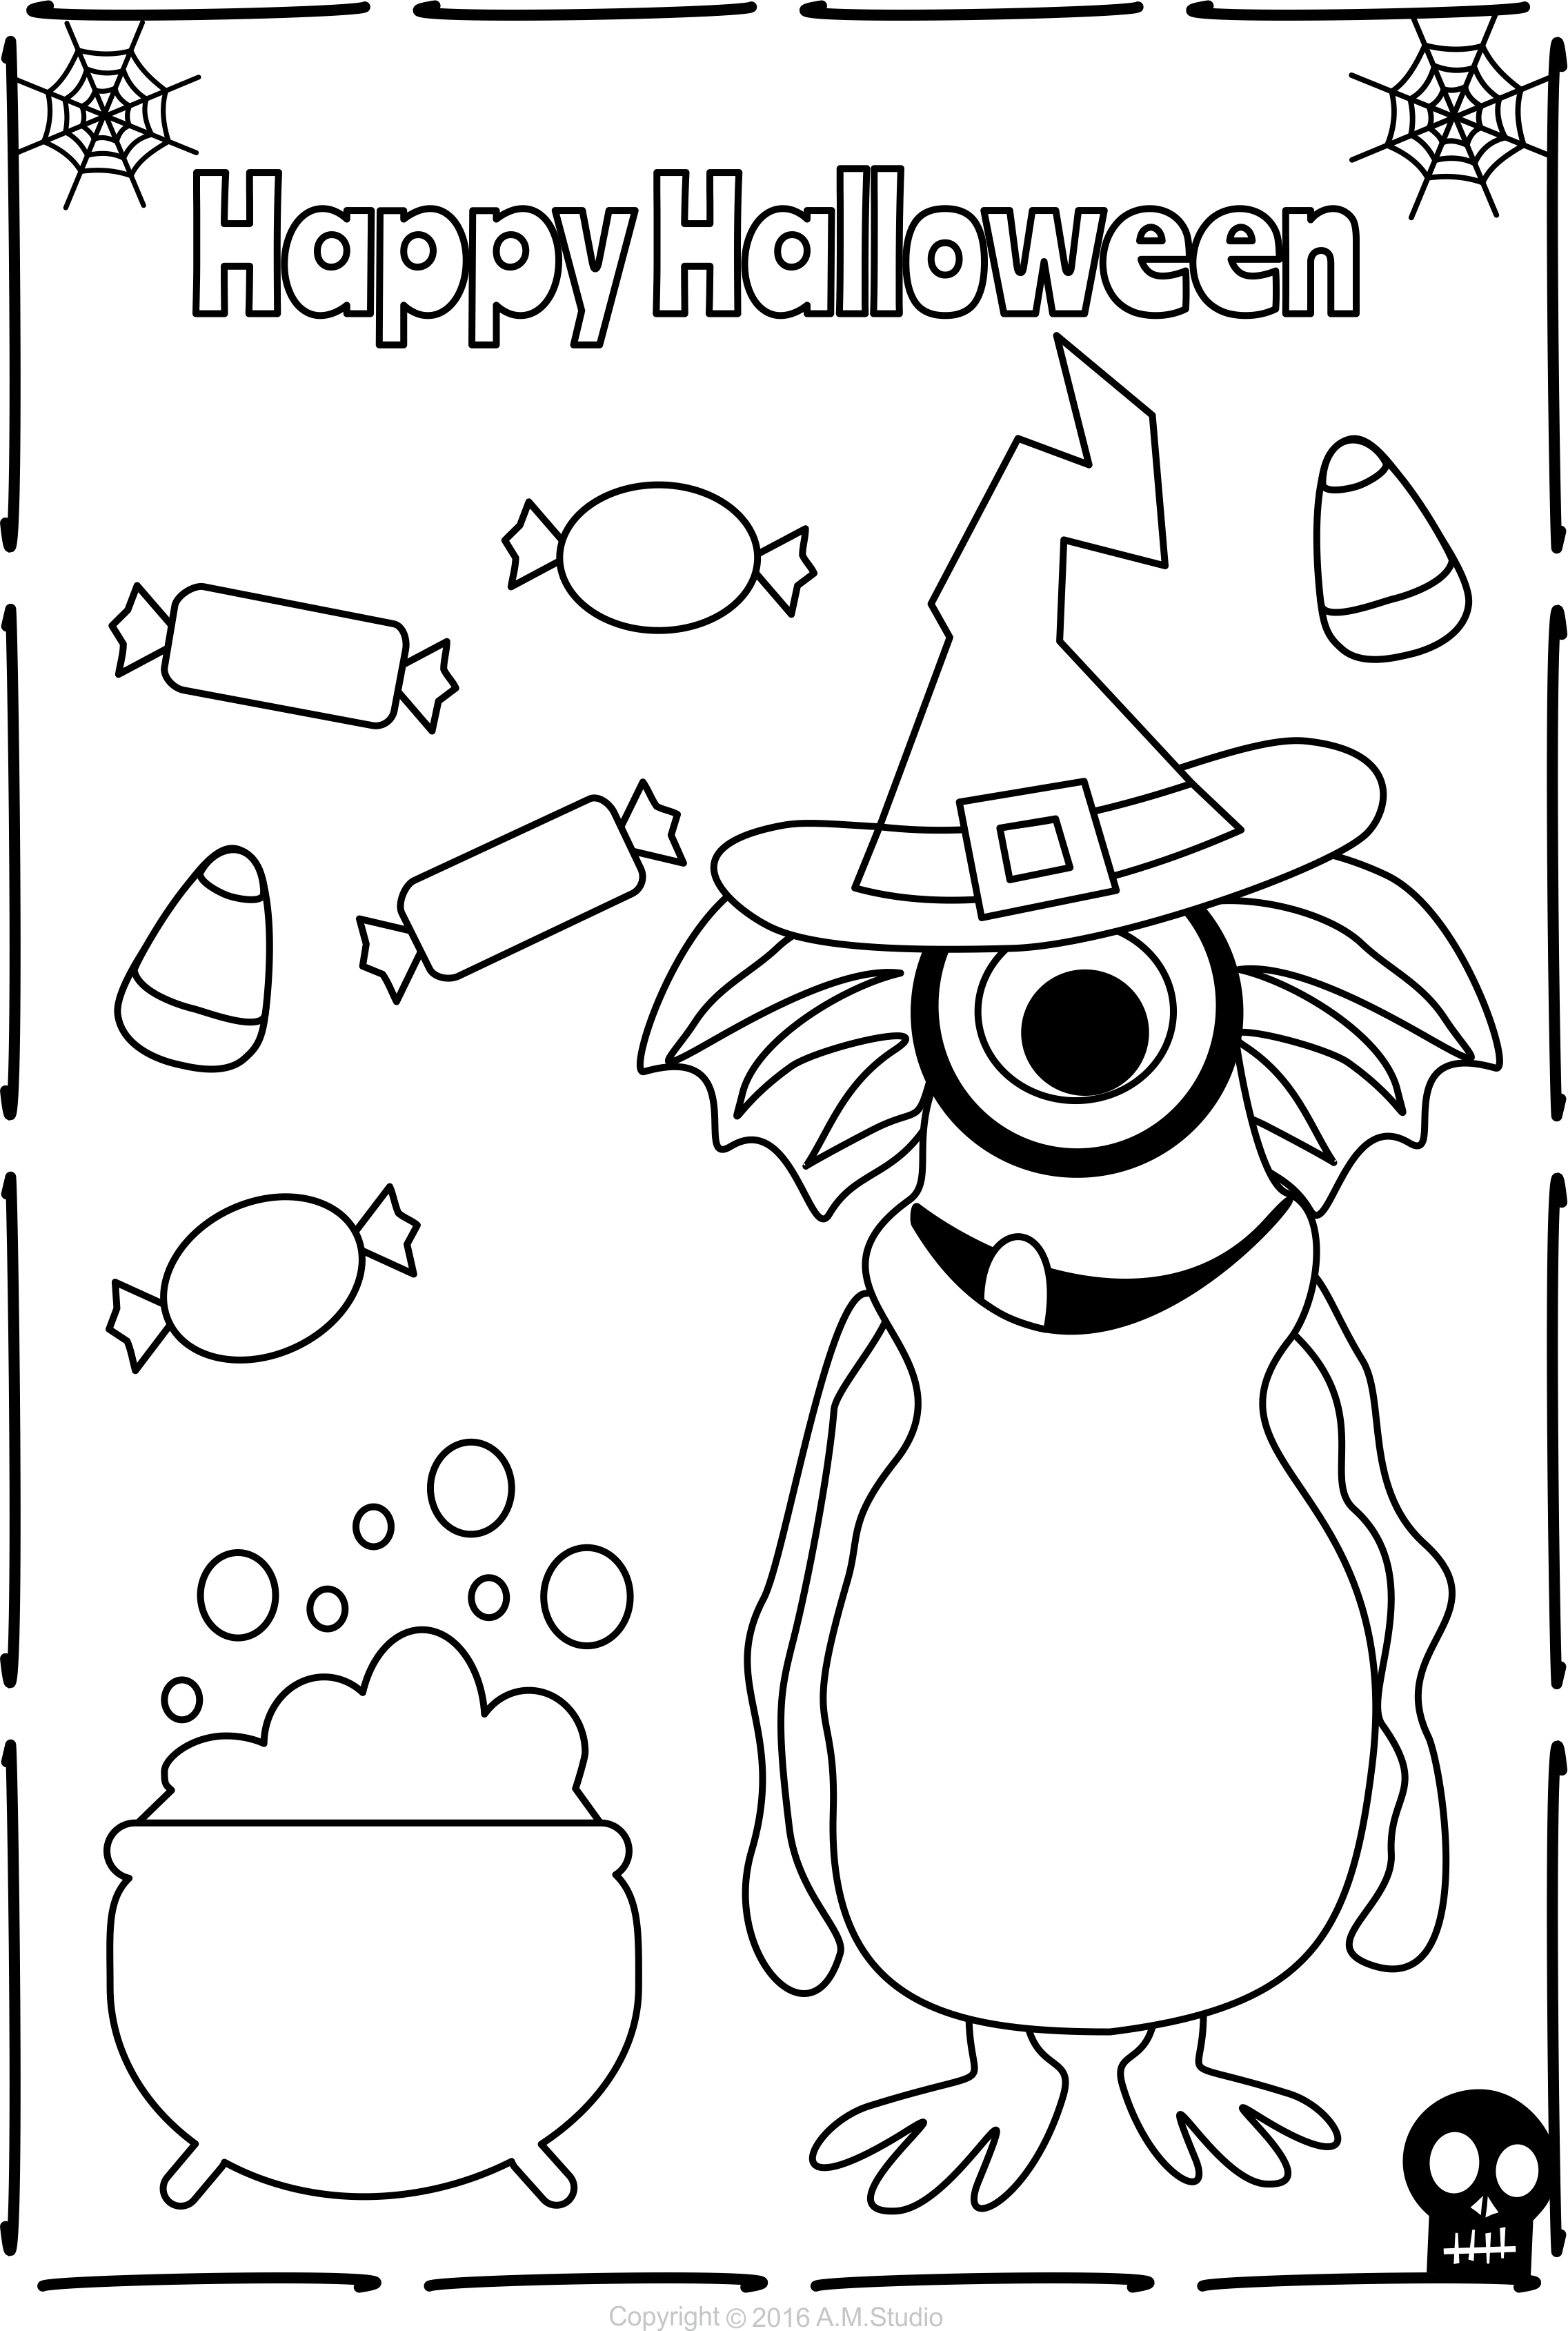 13 Halloween Themed Coloring Pages For Kids Coloring Pages